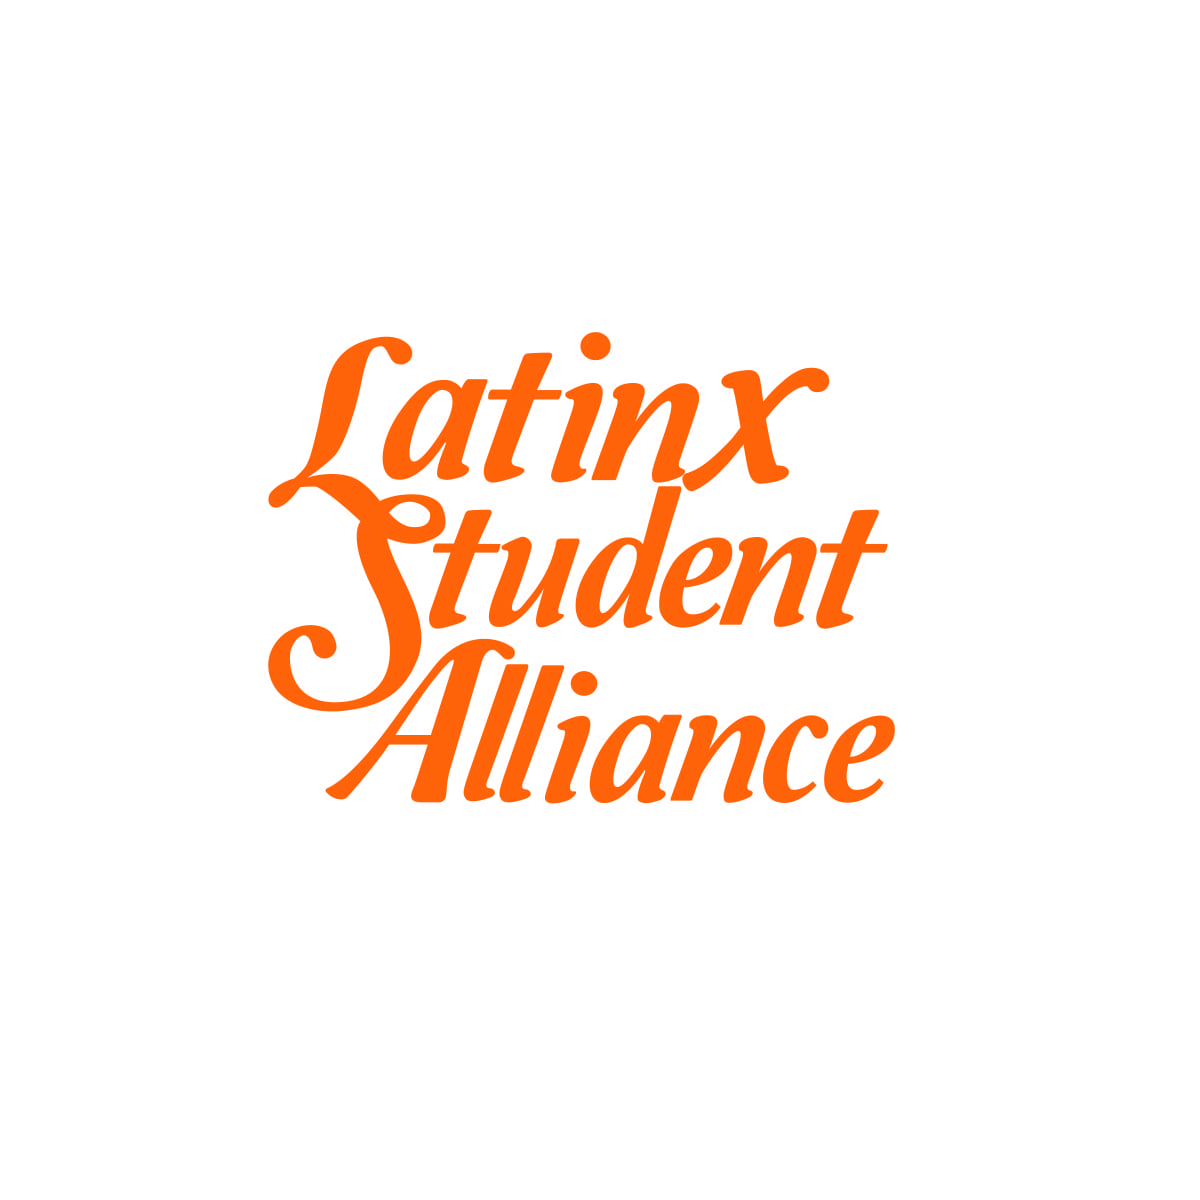 latinx student alliance logo